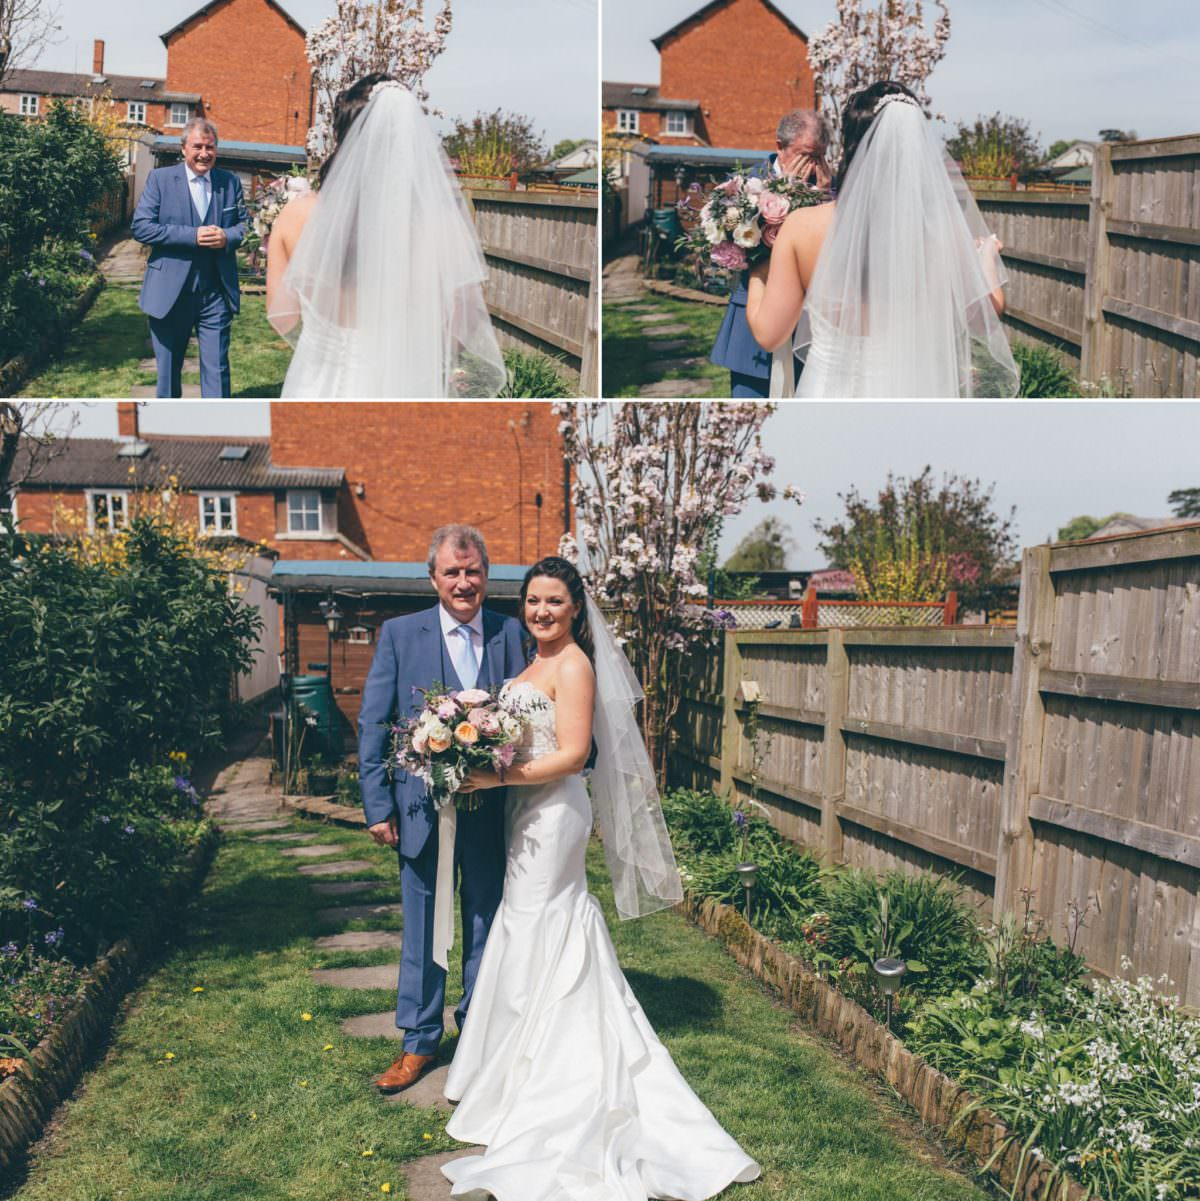 cripps_barn_gloucesterhsire_welsh_wedding_photographer_rachel_lambert_photography_jordan_amy_ 26